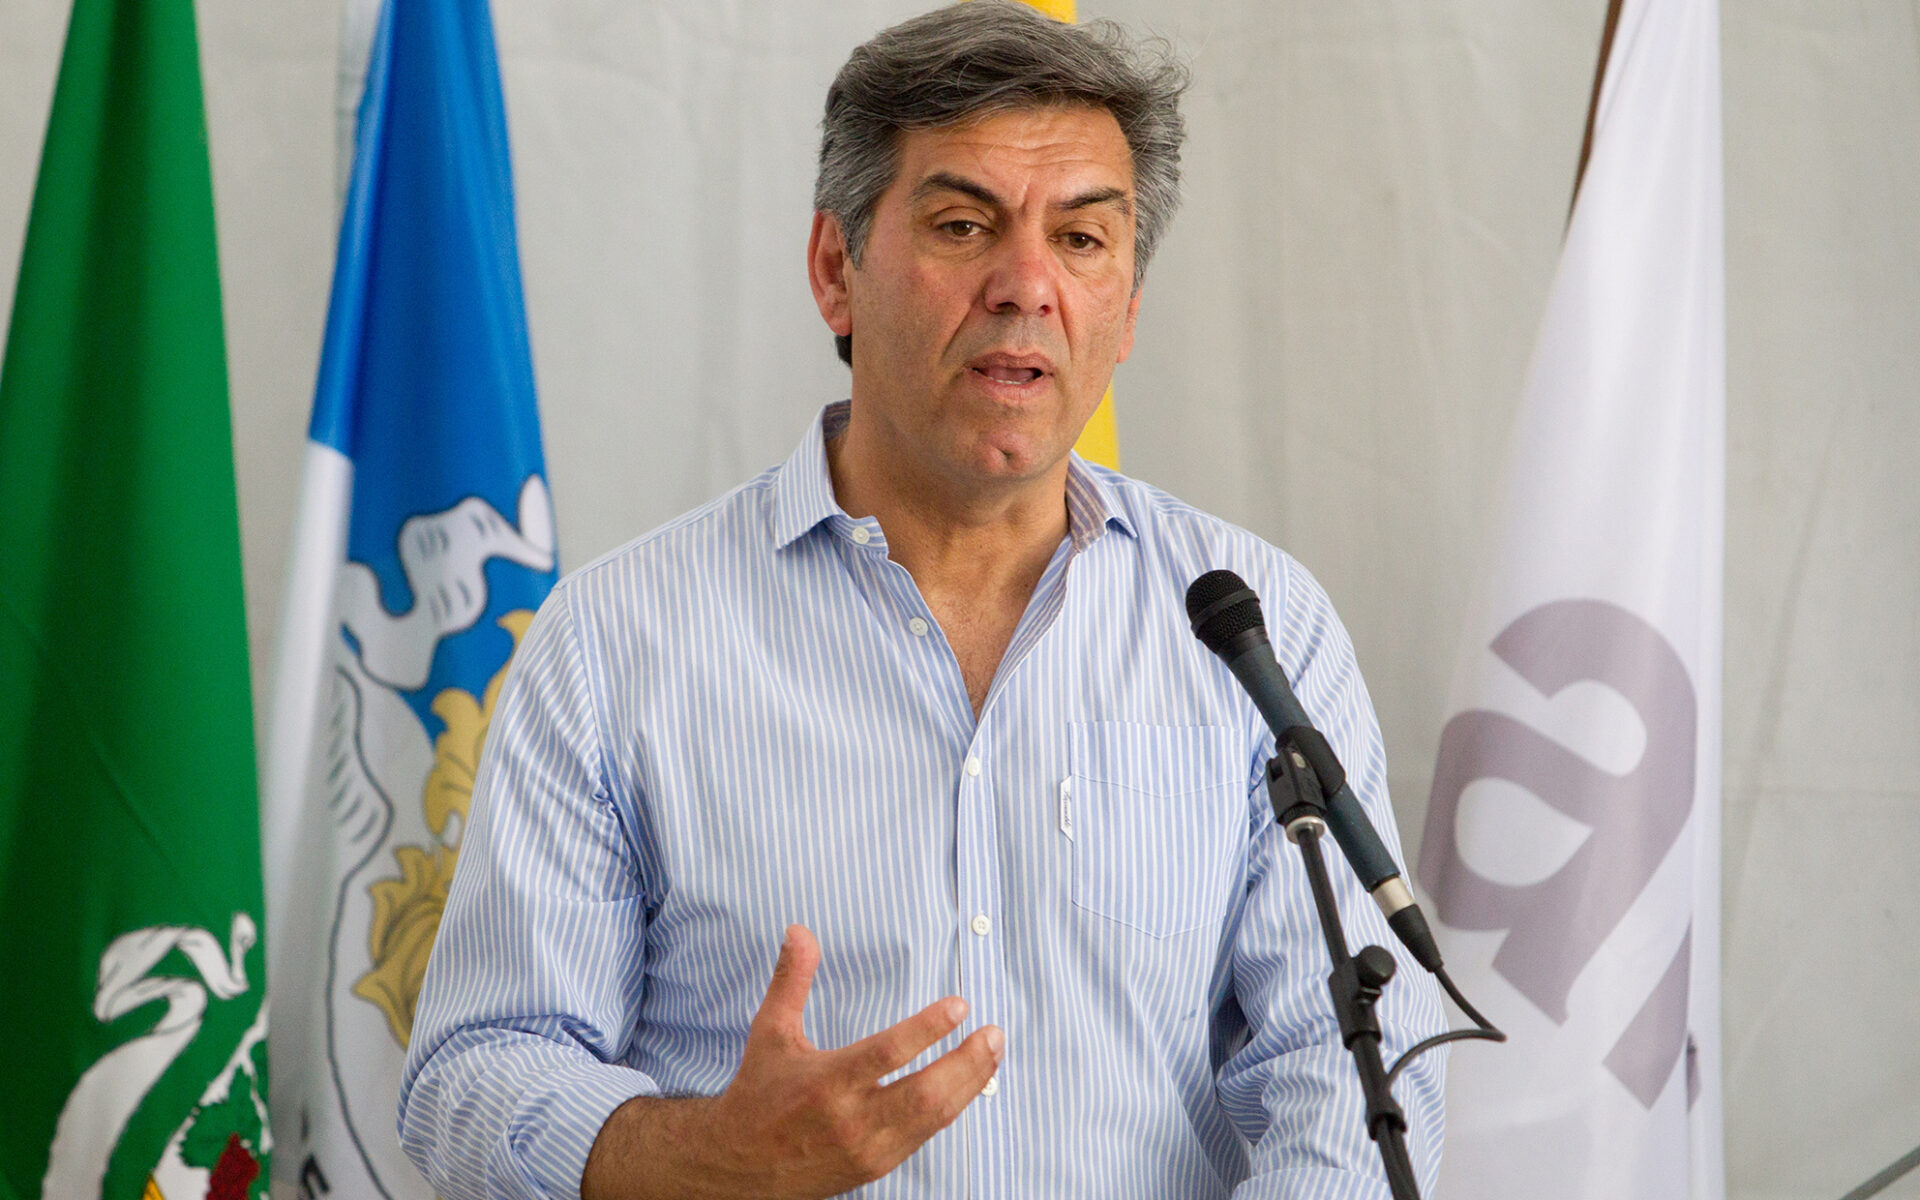 The ceremony was brought to a close by the Secretary of State of Forests and Rural Development, Miguel Freitas